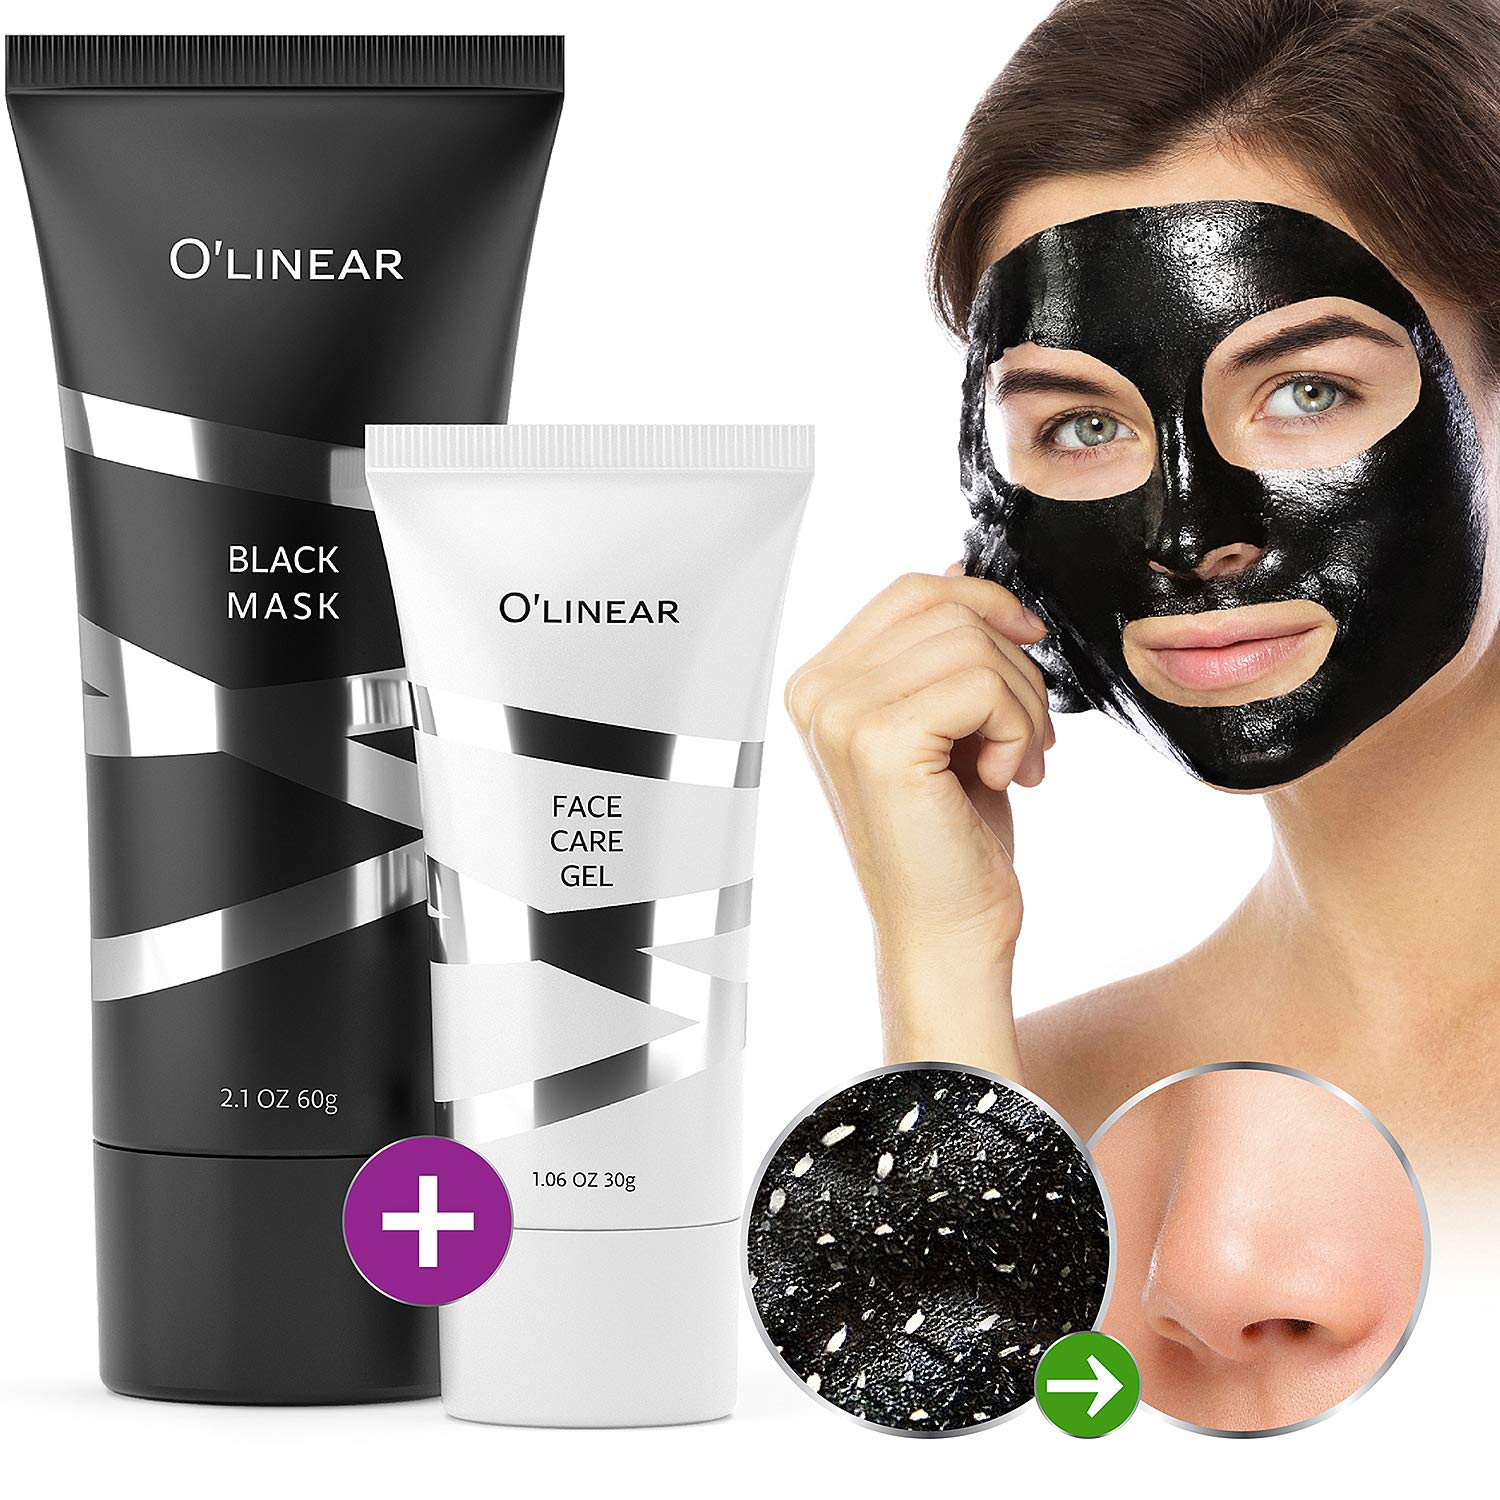 Black Charcoal Mask Blackhead Remover - Face Peel Off Mask With Natural Activated Organic Bamboo Charcoal - Deep Cleansing Pore Blackhead Removal - Purifying Face Mask & Face Care Gel for Women & Men by O'linear